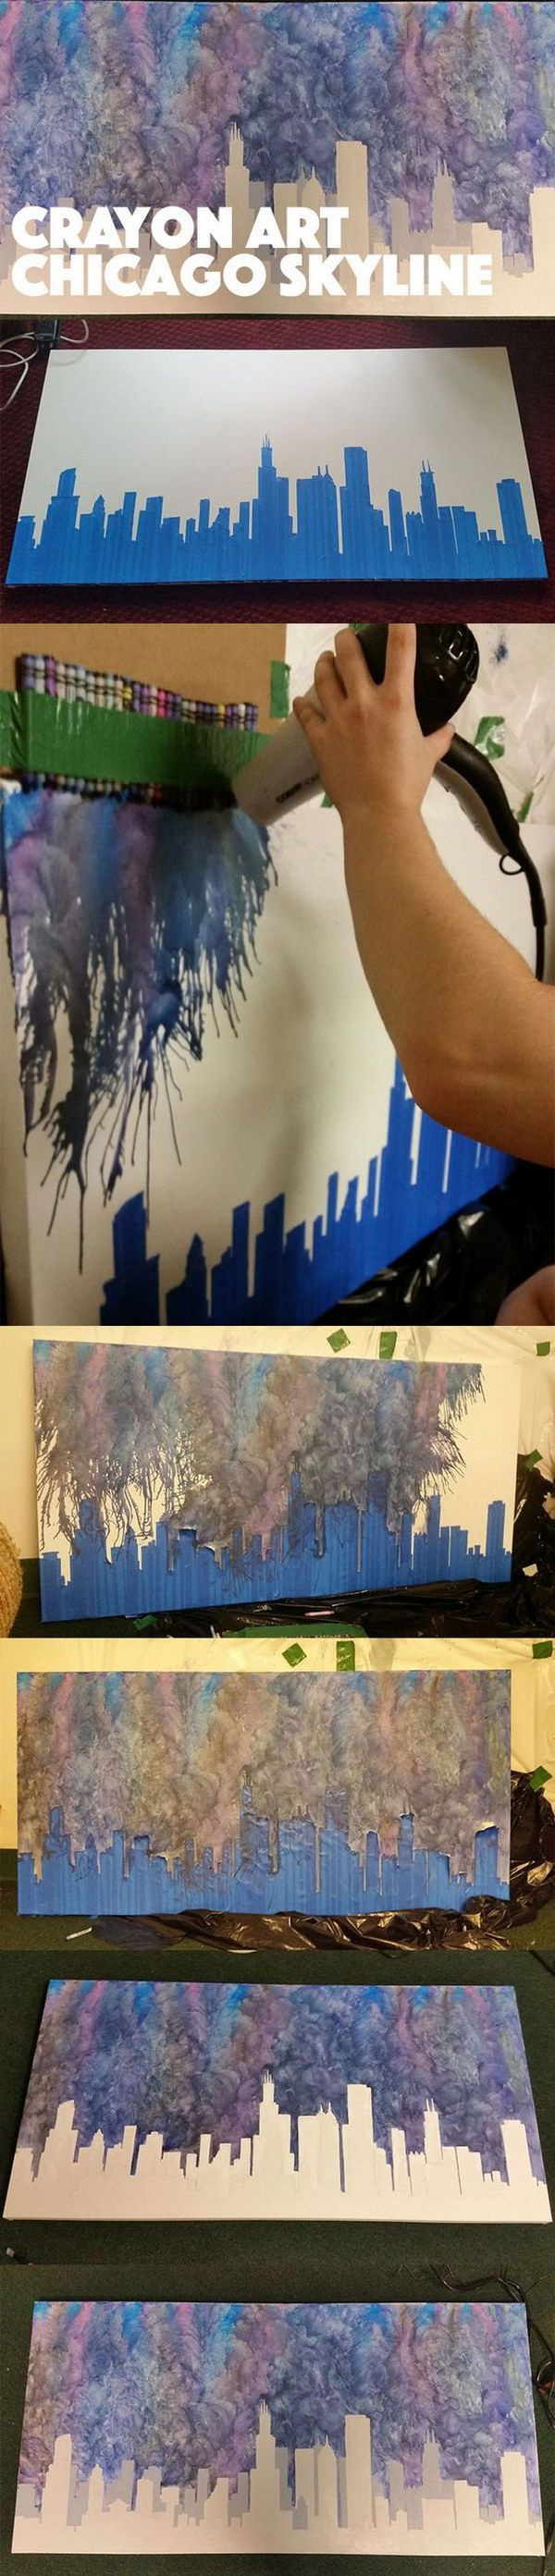 Melted Crayon Art: Chicago Skyline.